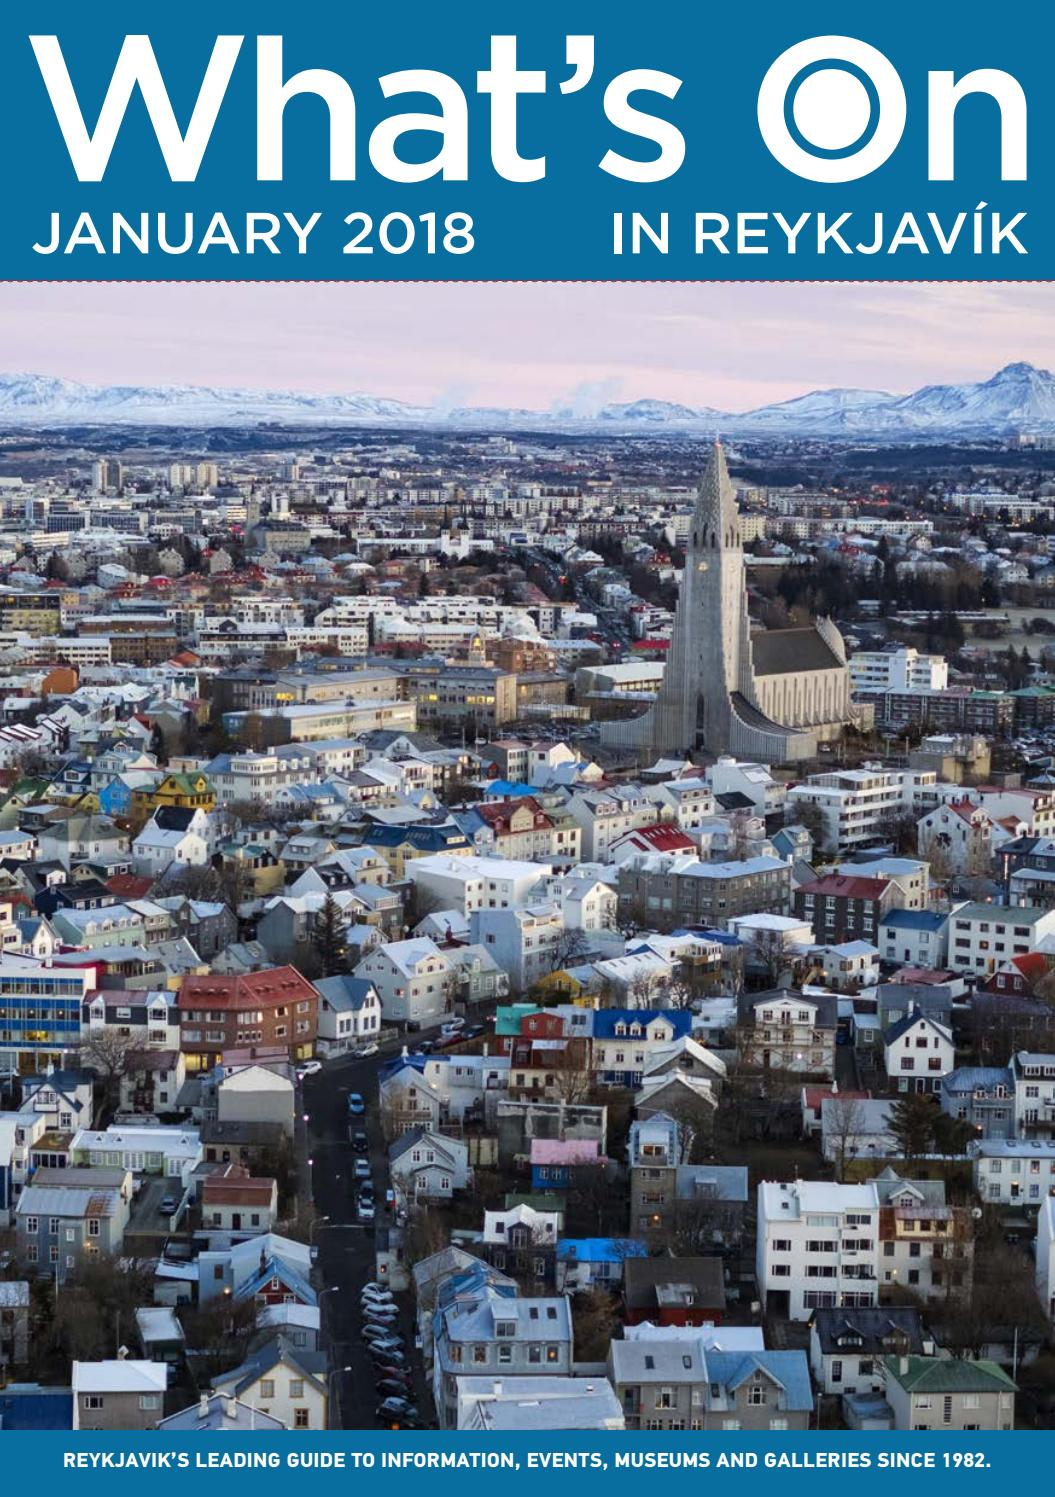 whats on in reykjavik january 2018 by md reykjavik issuu